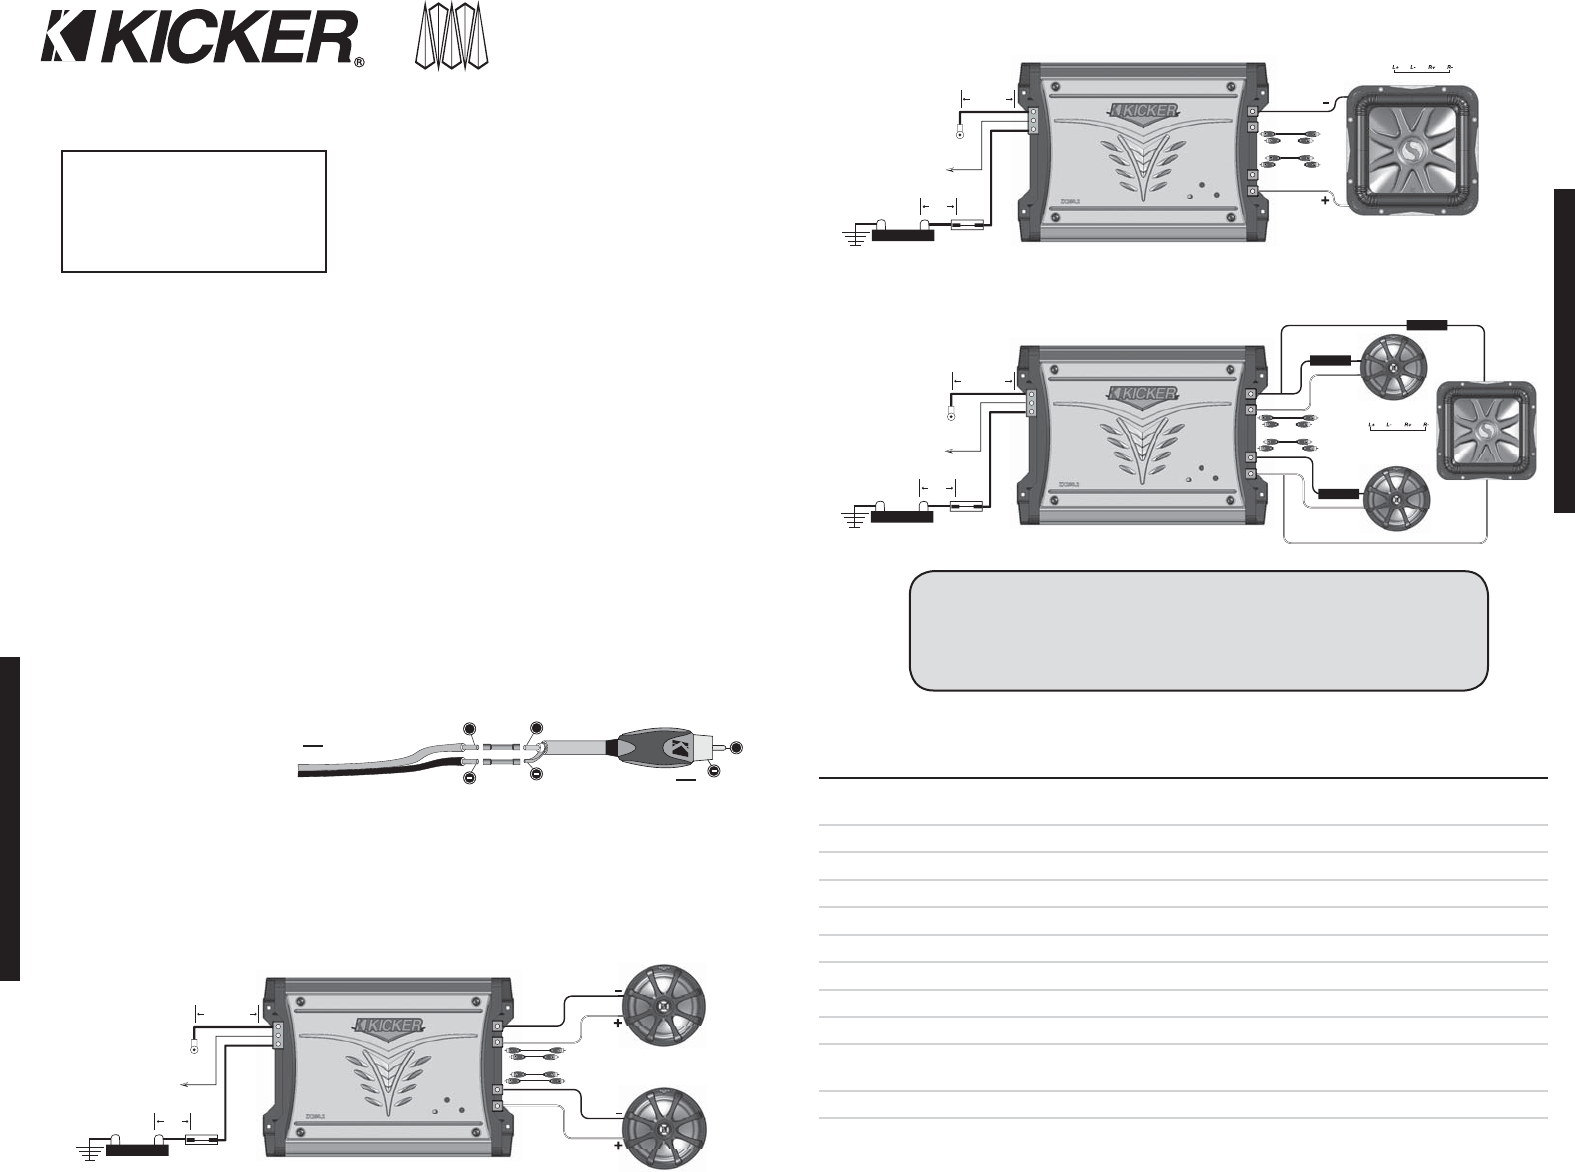 Kicker Cx 1 Wiring Diagram